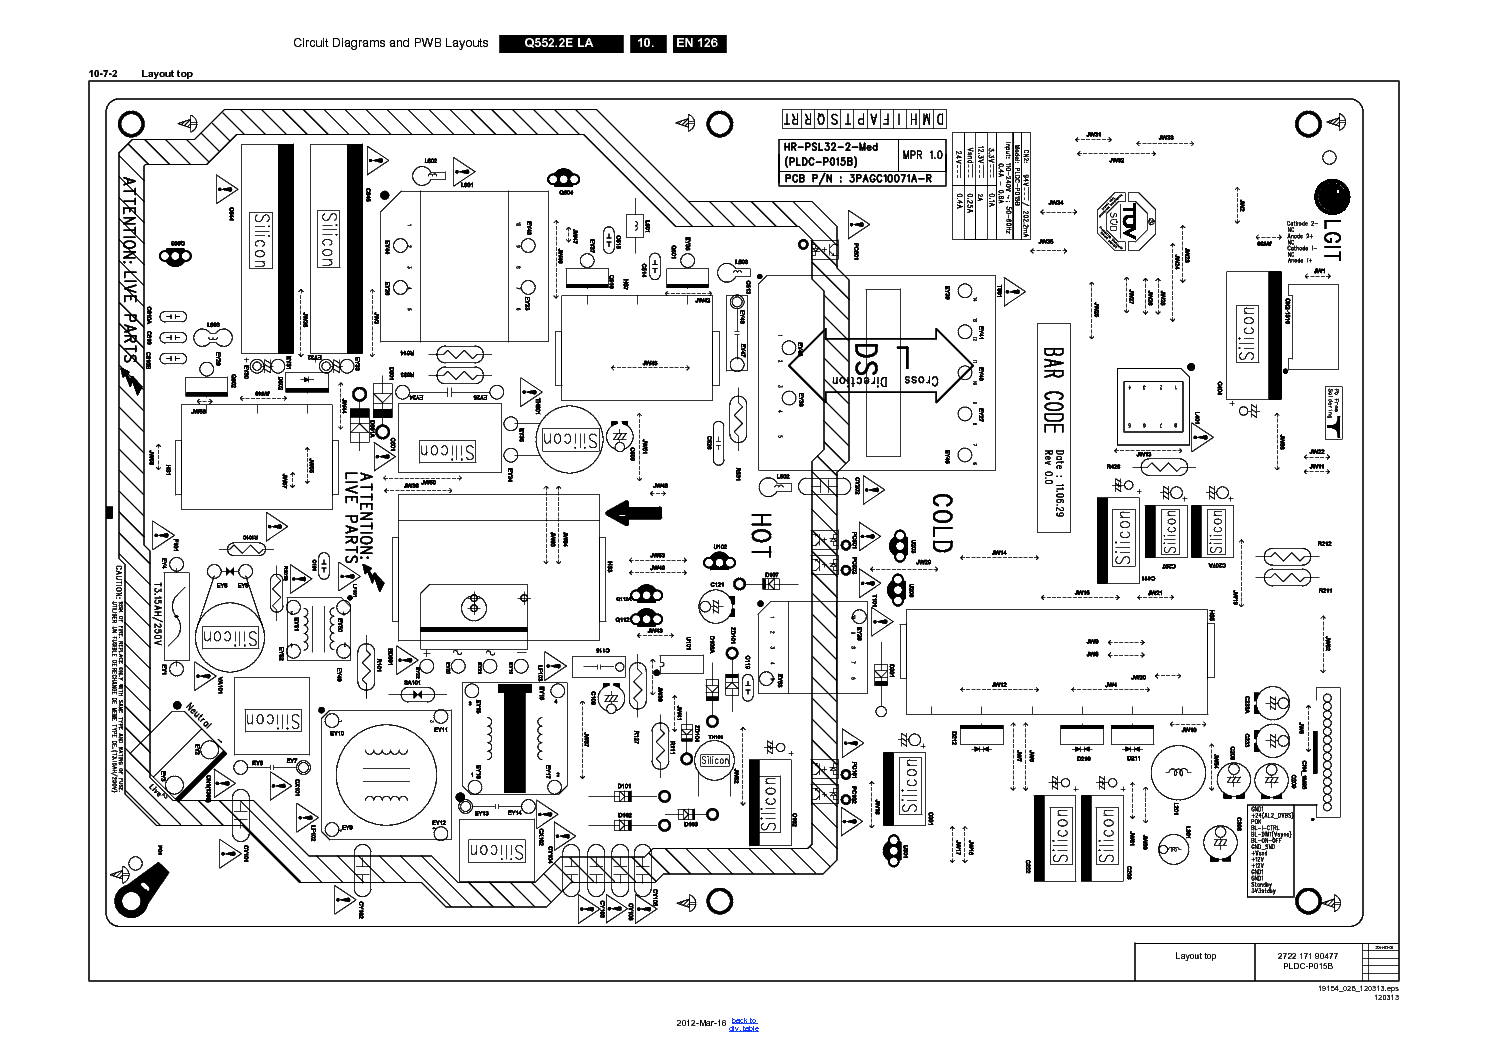 1990 Ezgo Electric Golf Cart Wiring Diagram Share The Knownledge